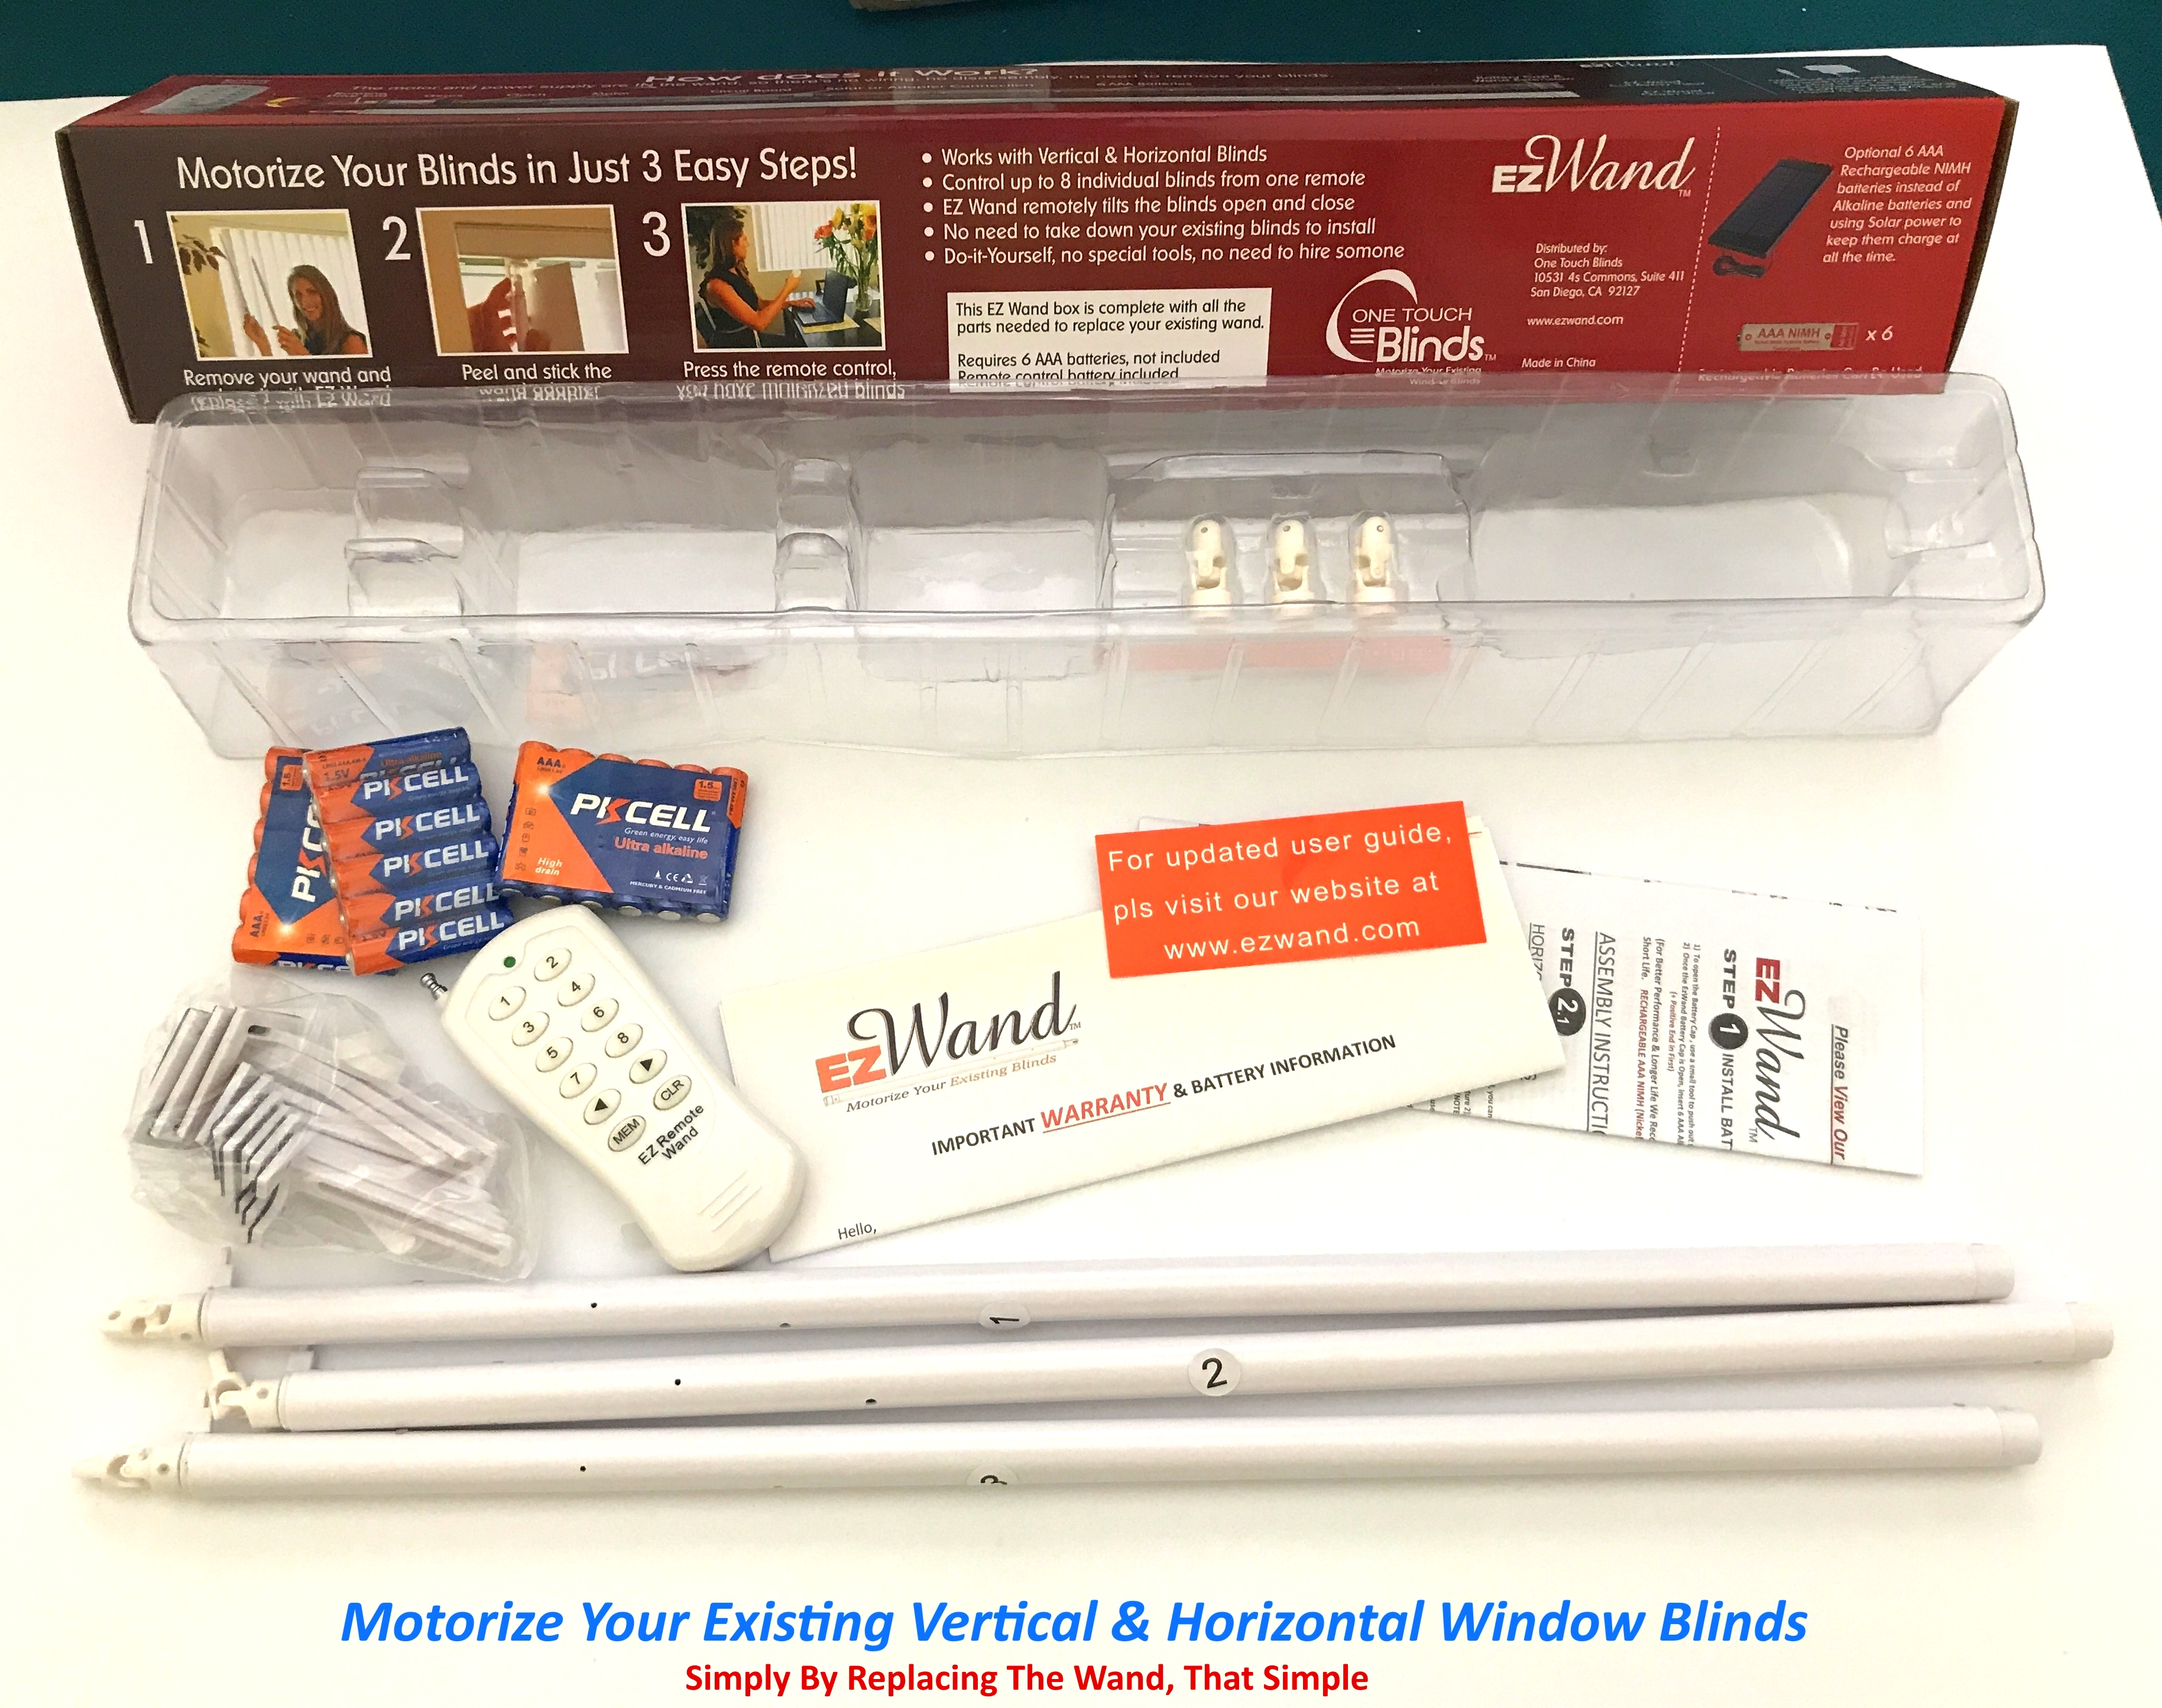 blinds-vertical-horizontal-automated-motorized-remote-ezwand-deluxe.jpg